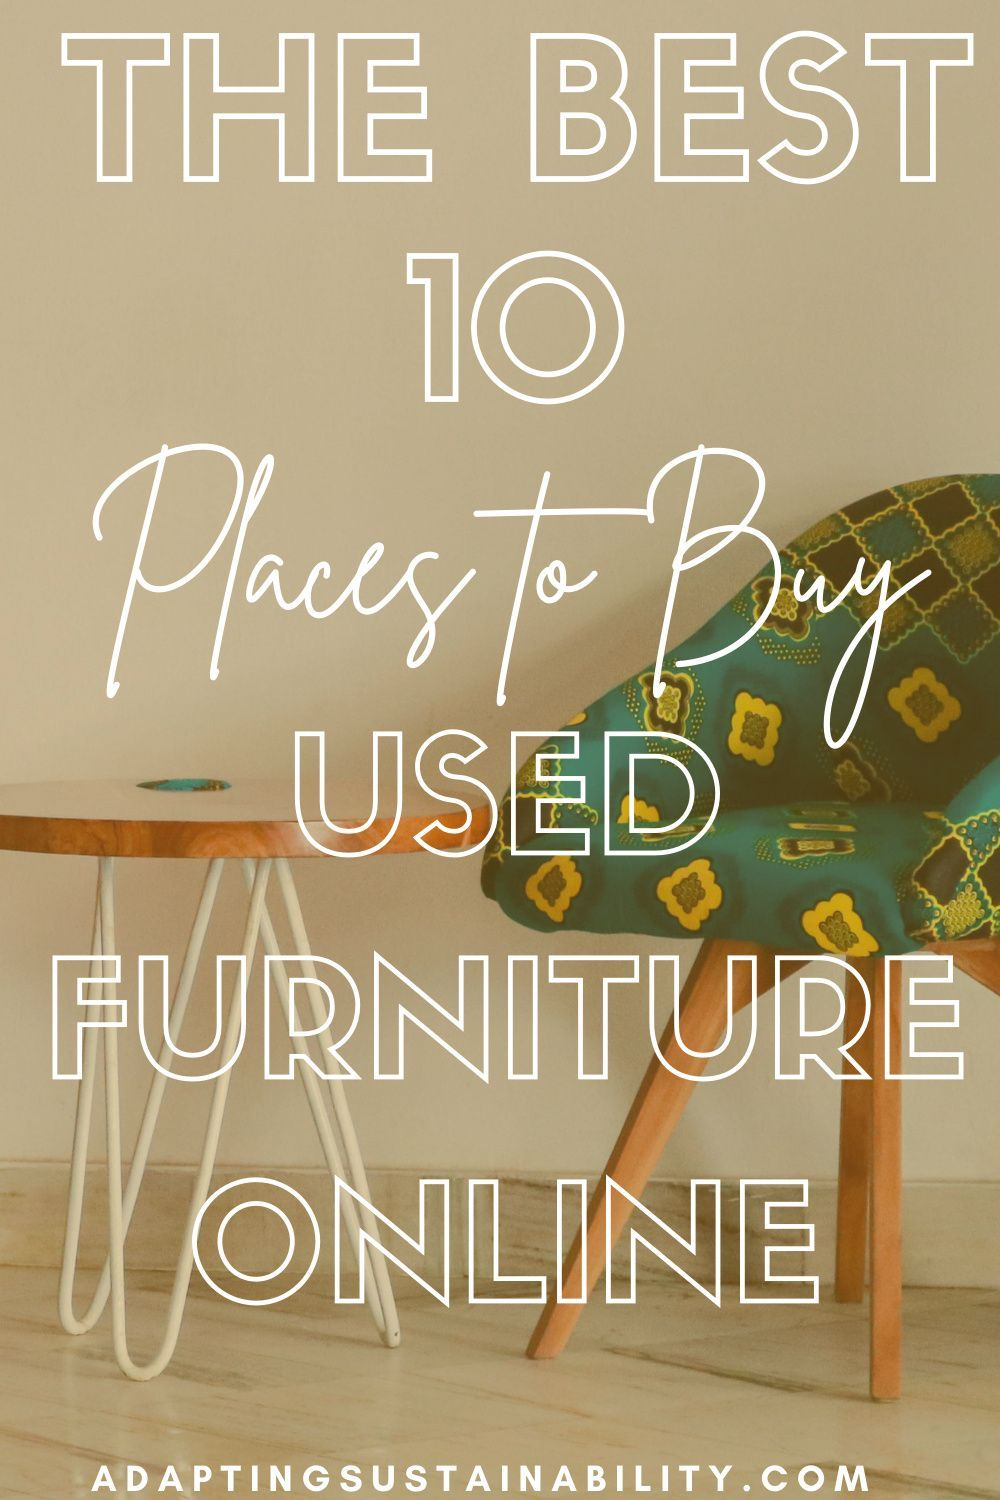 The Best 10 Places To Buy Used Furniture Online Adapting Sustainability In 2021 Buying Your First Home Buy Used Furniture Online Furniture